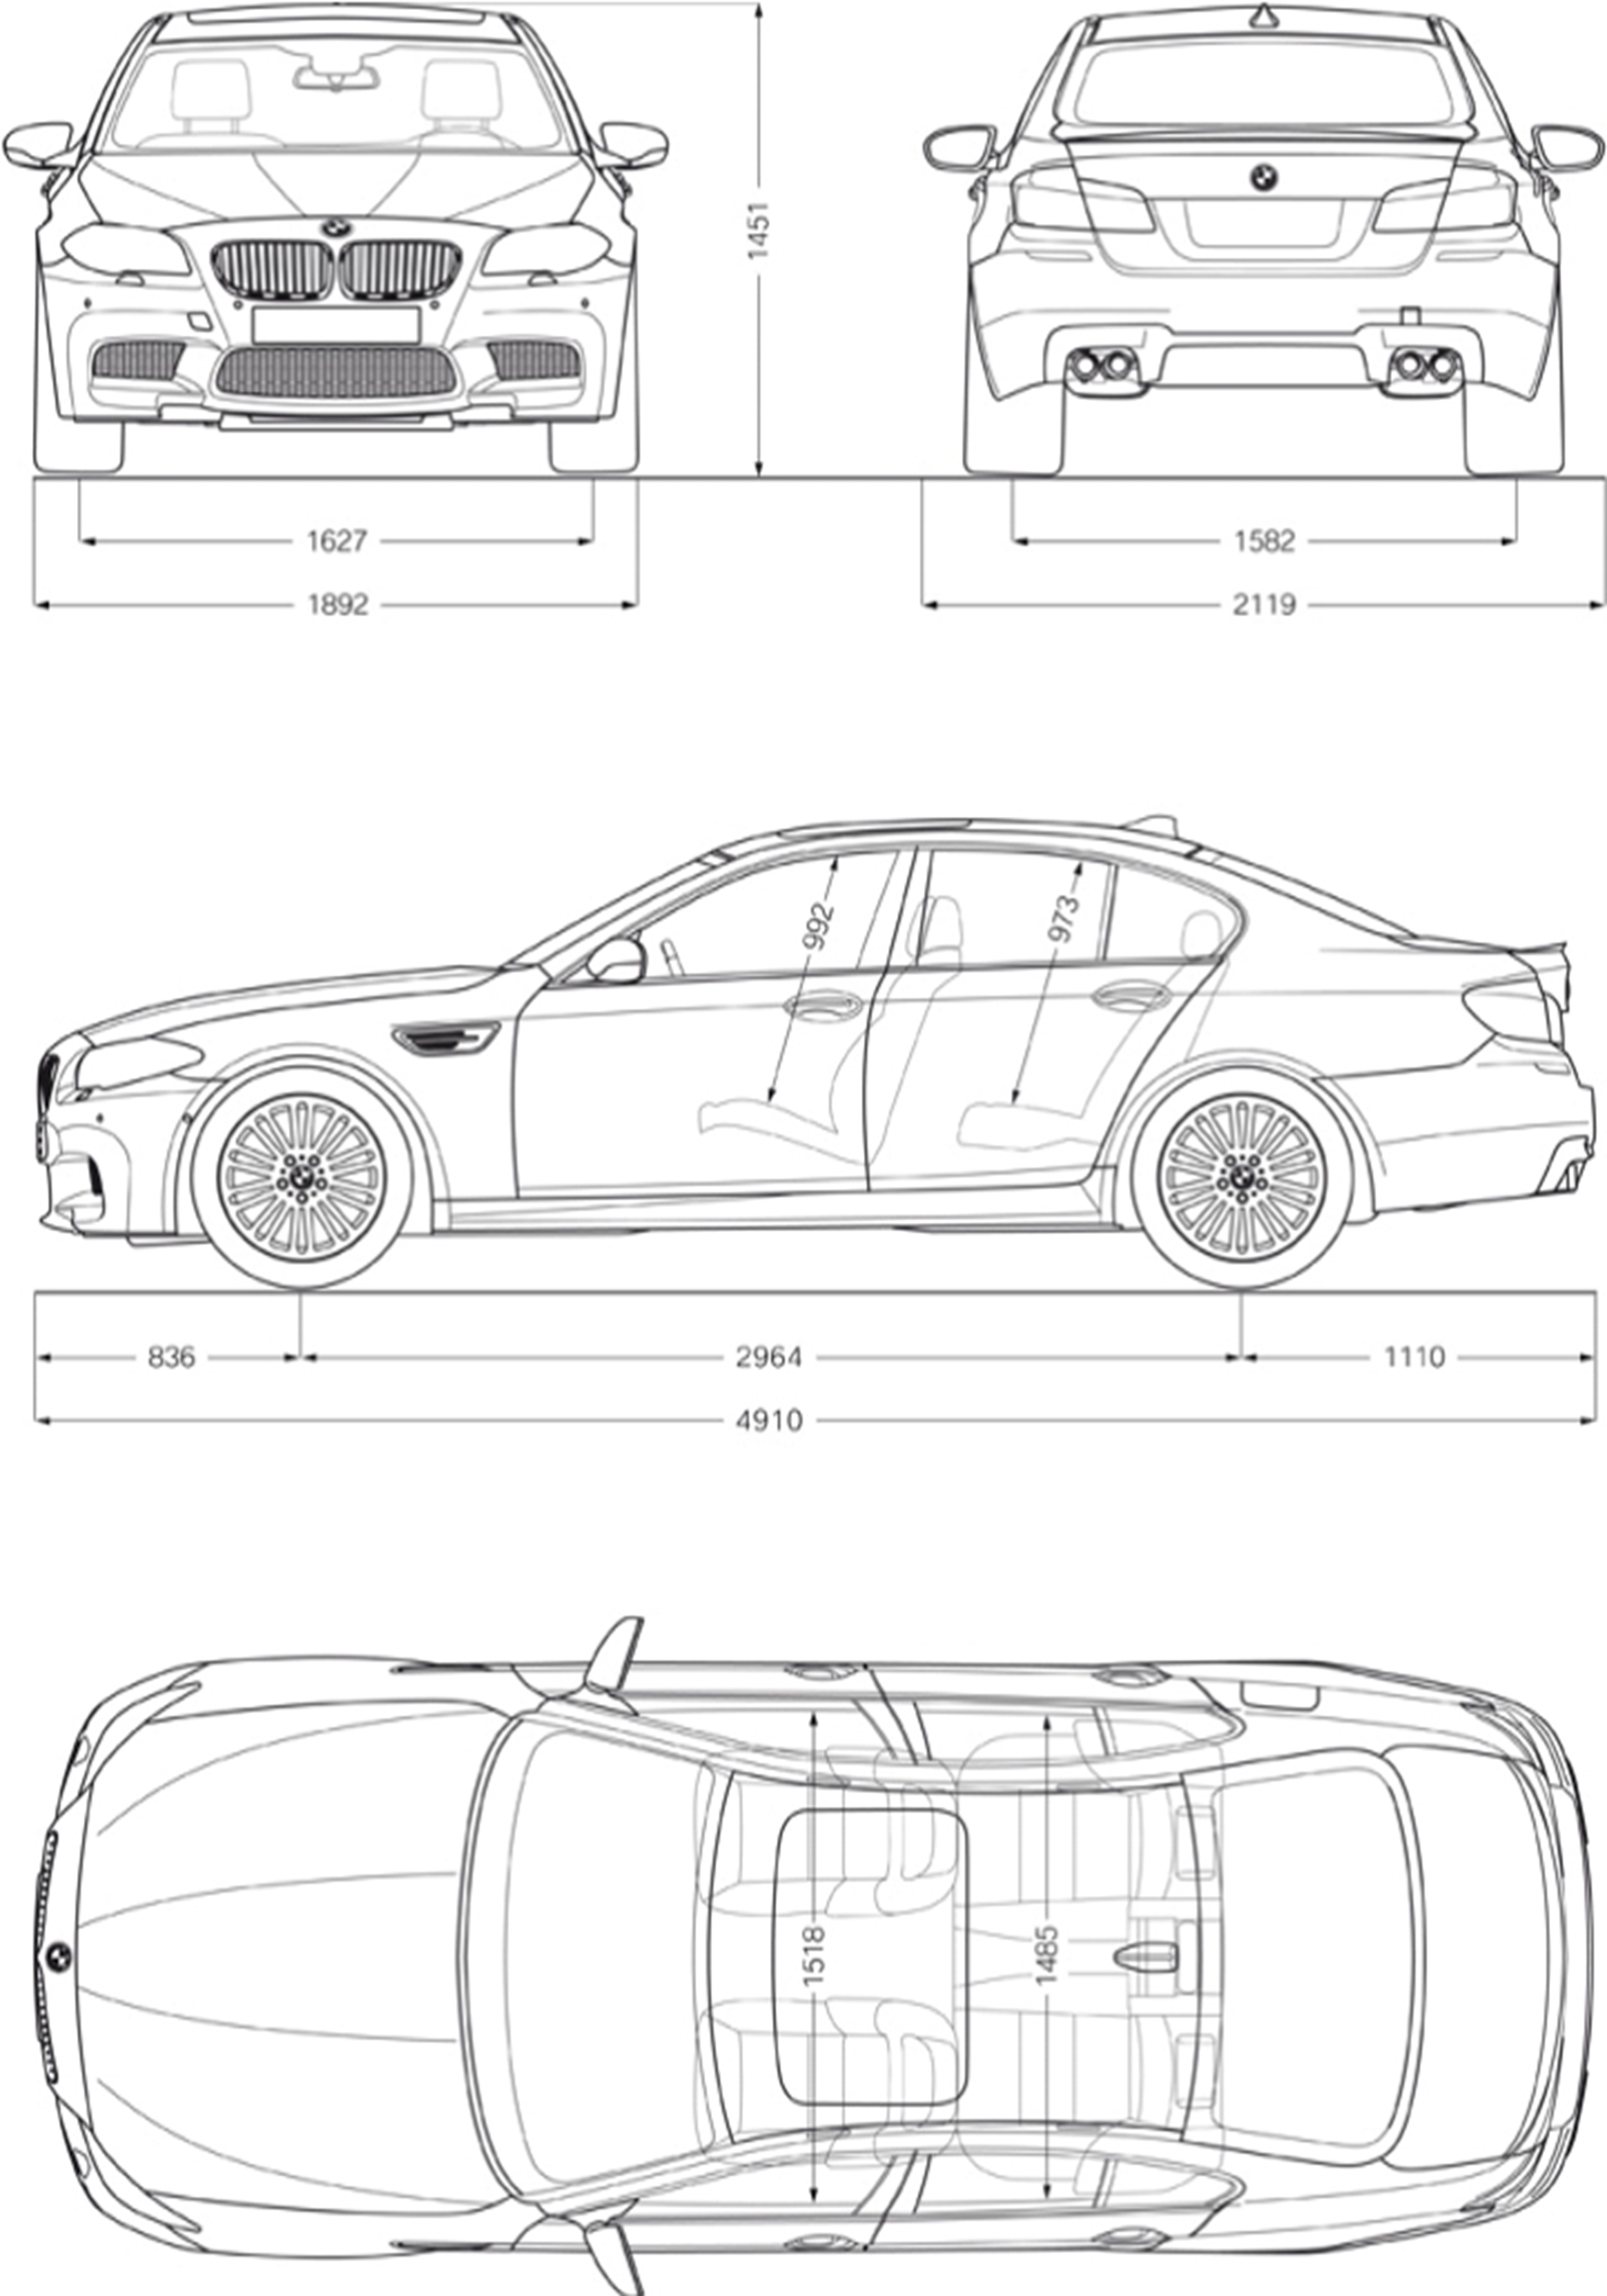 bmw m5 technical specifications bmw m5 exterior and interior dimensions bmw diagram